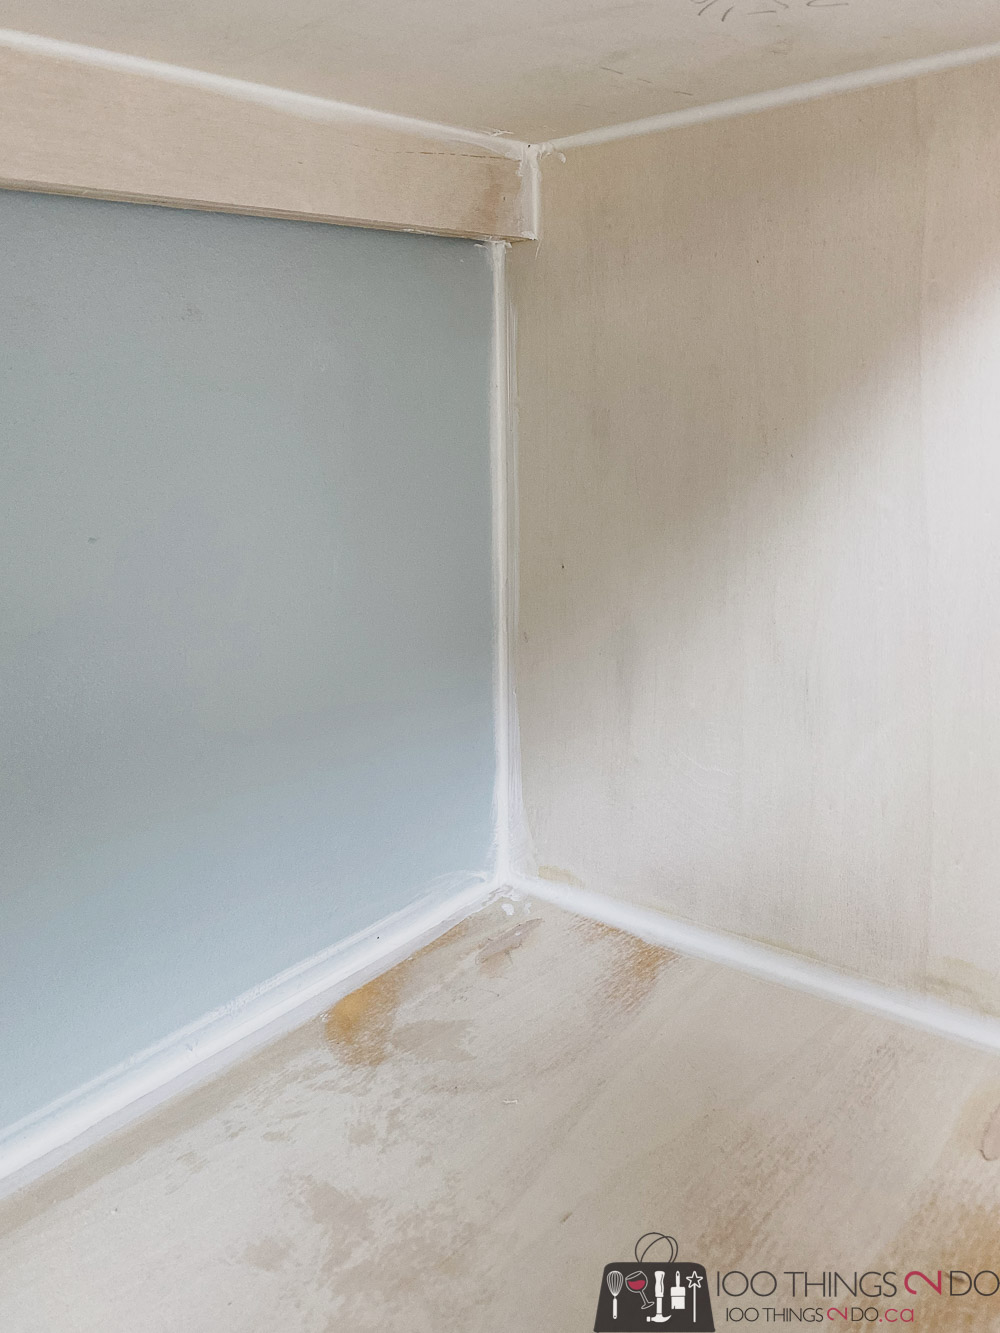 caulking the home office built-ins